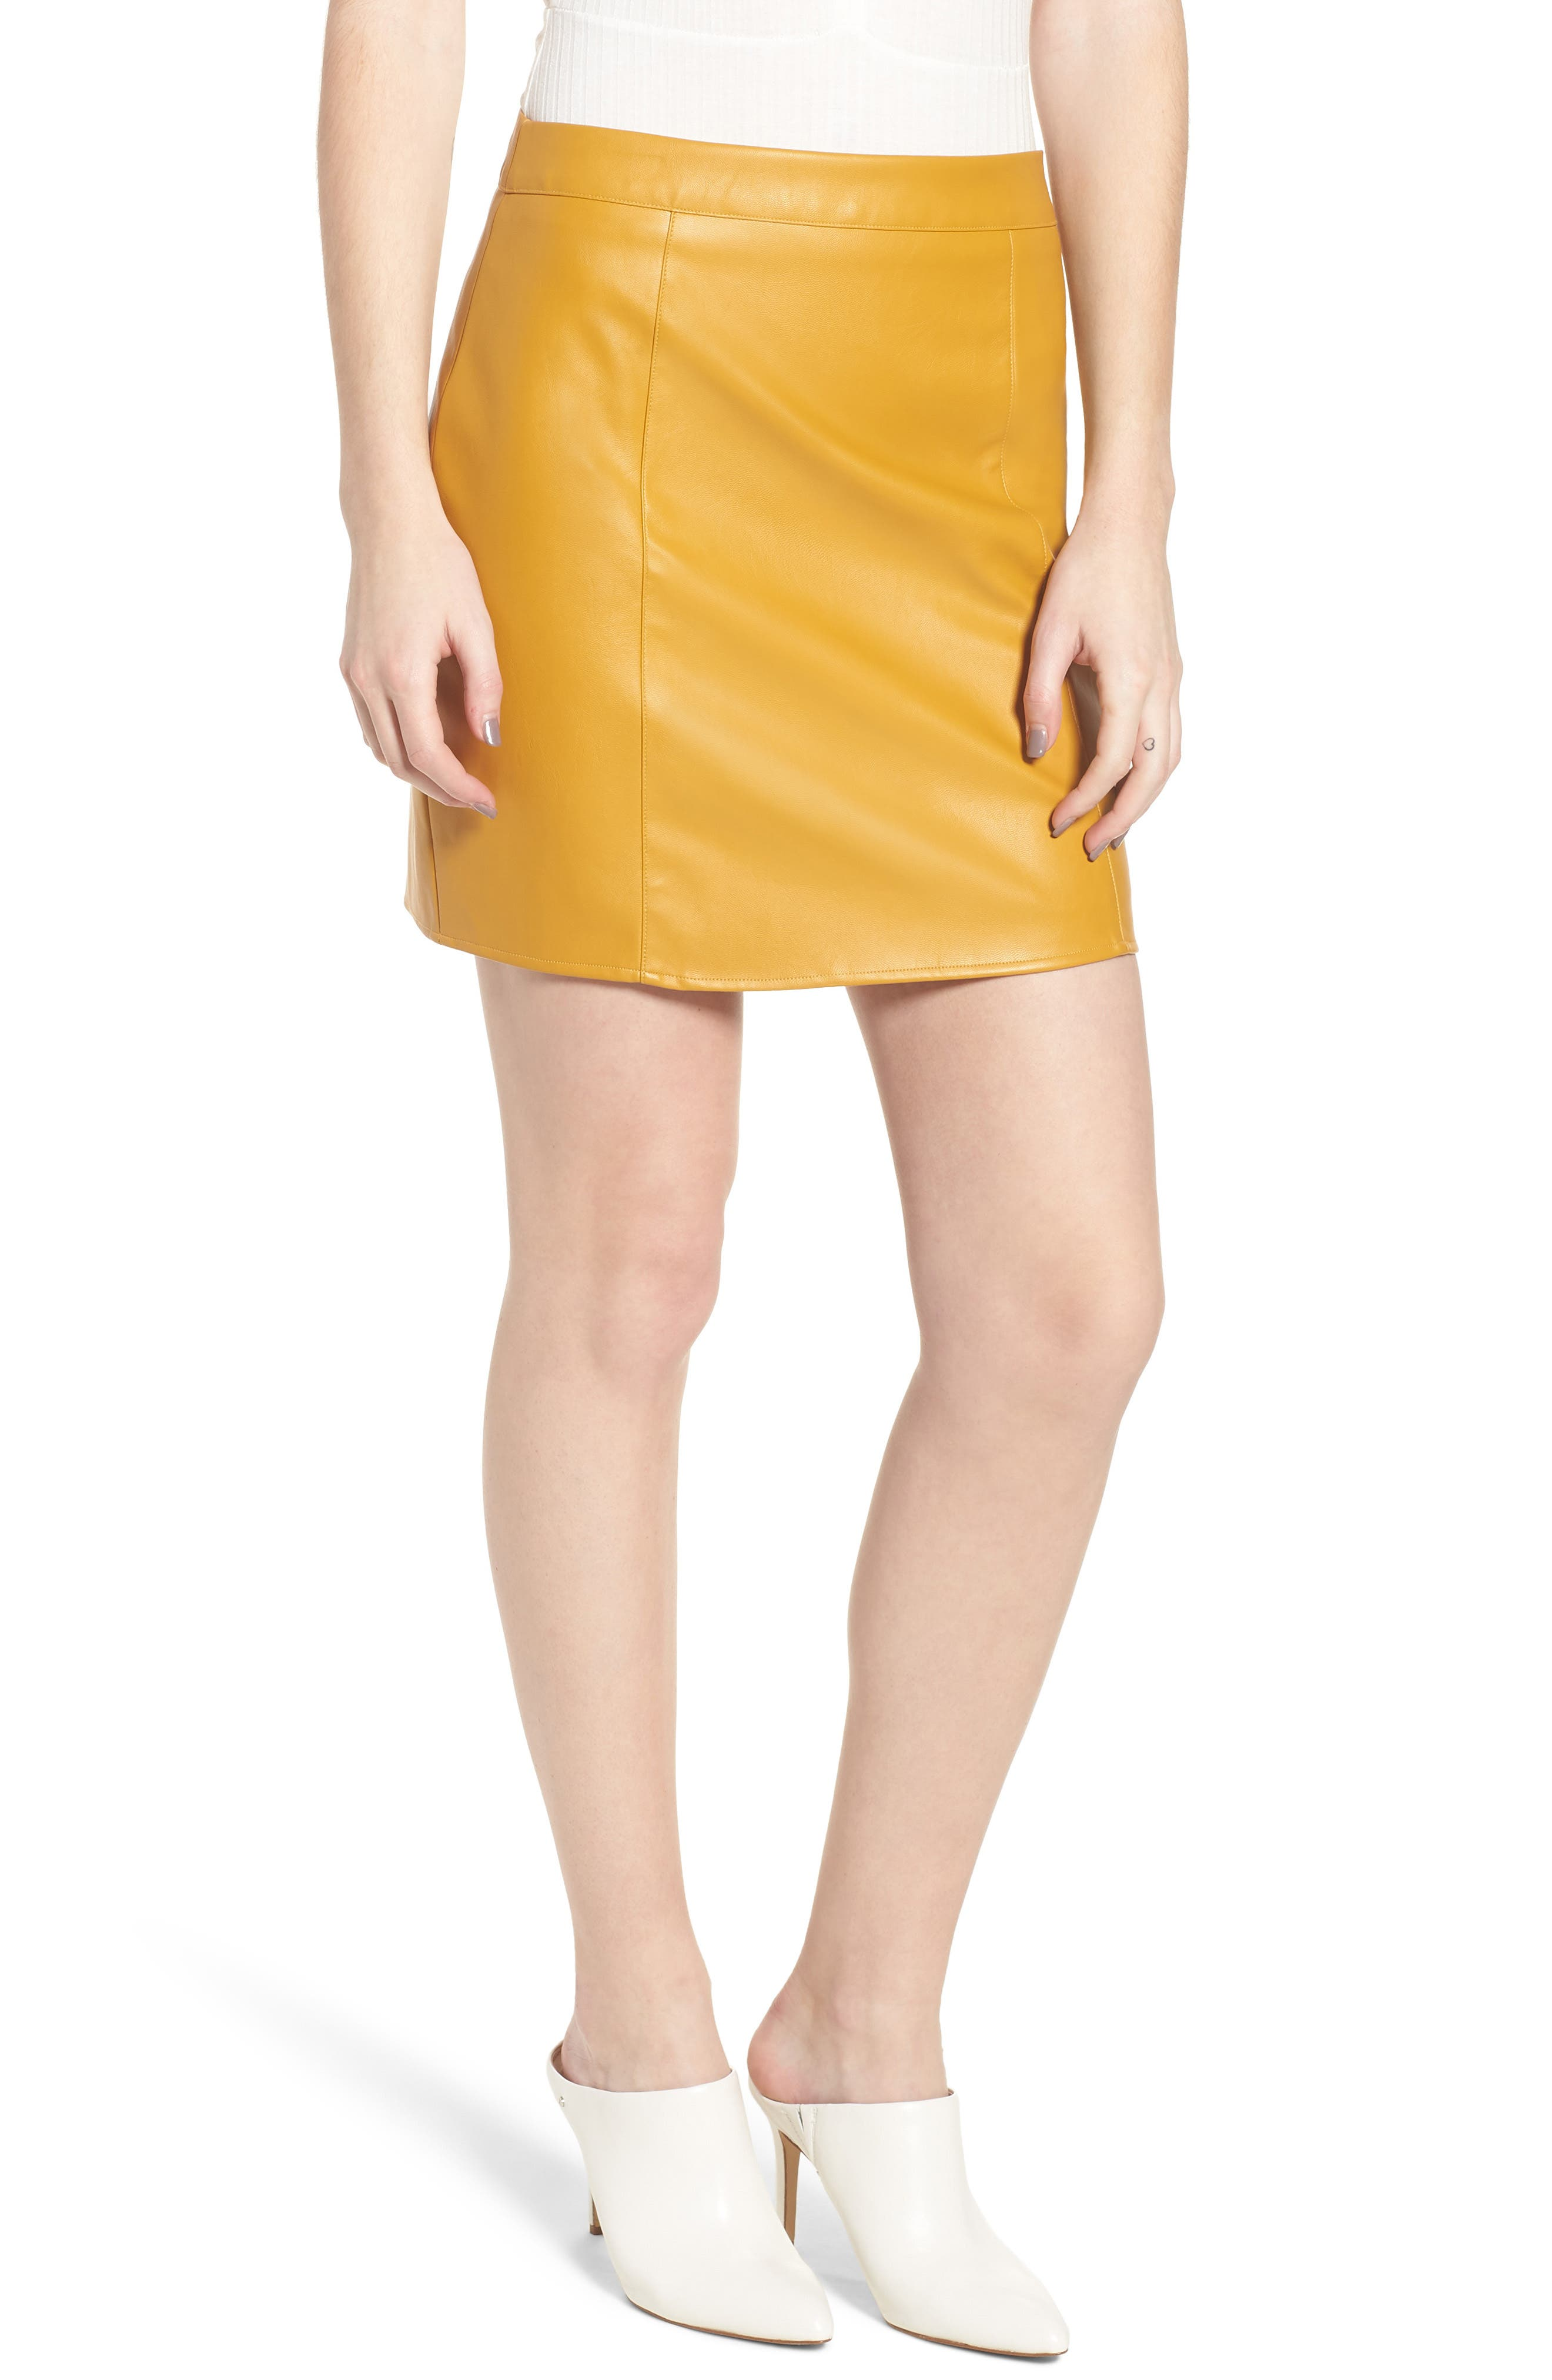 Bishop + Young Faux Leather Miniskirt,                             Main thumbnail 1, color,                             MUSTARD